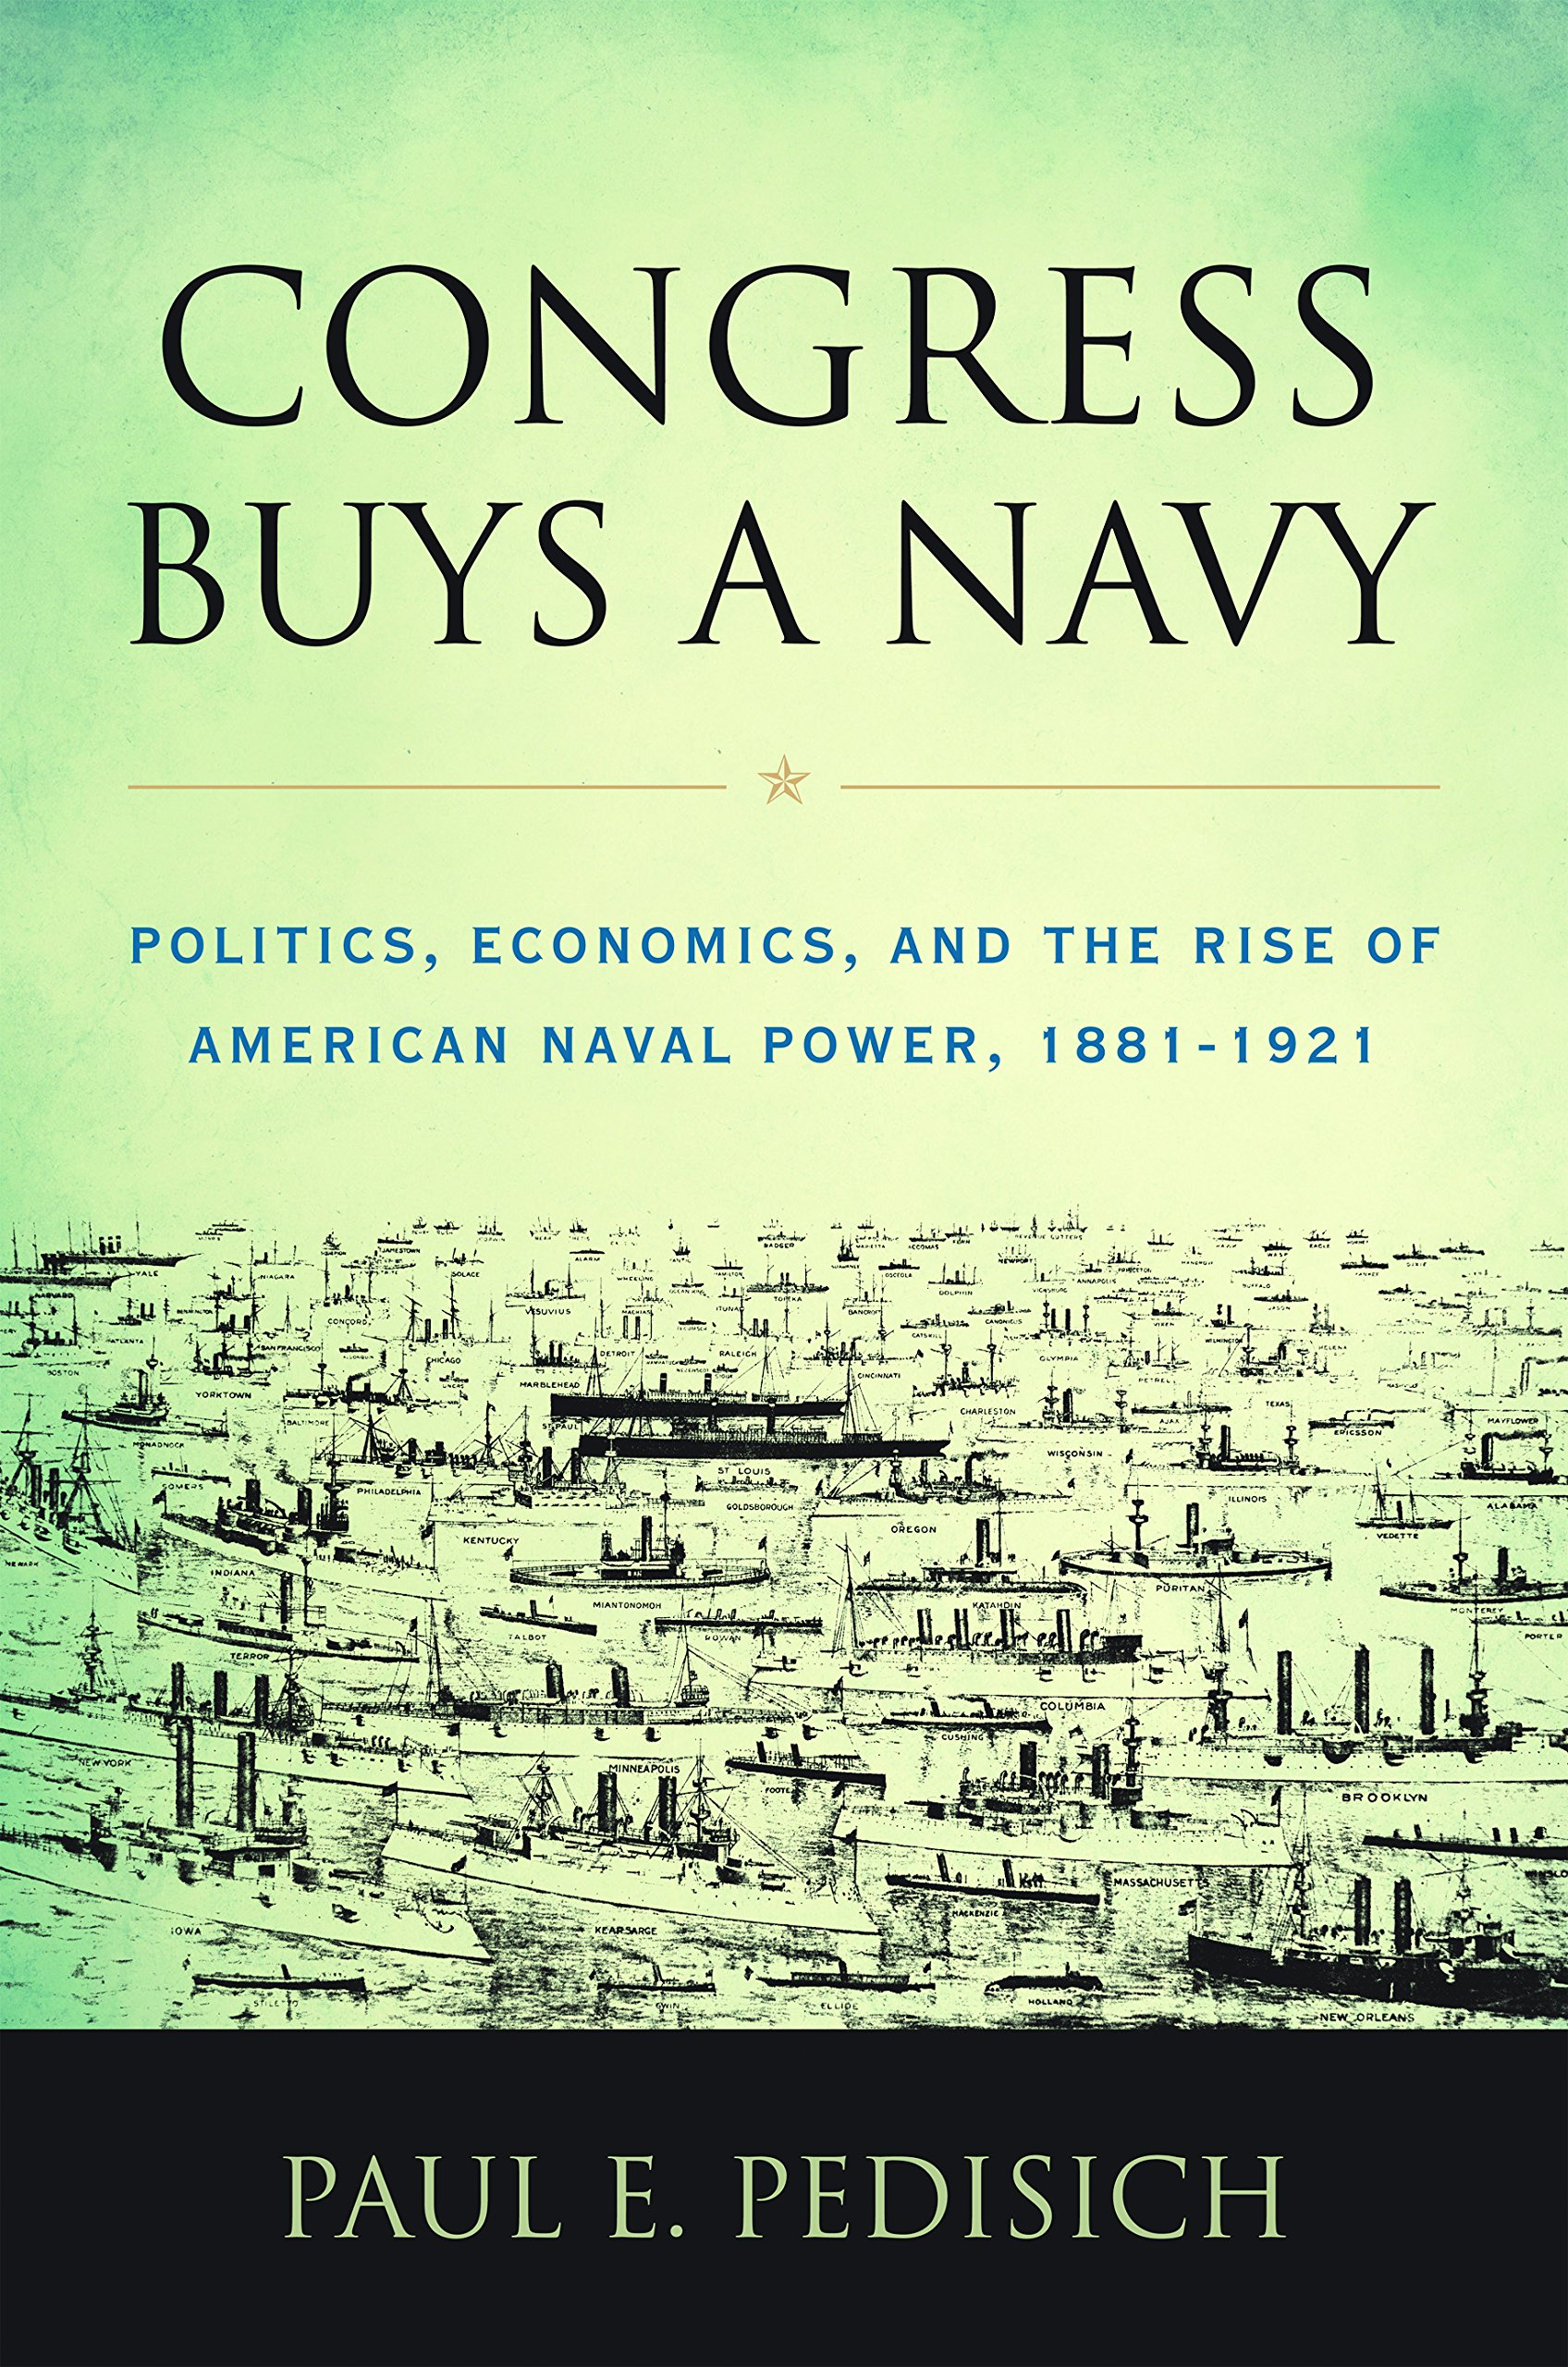 Congress Buys a Navy: Politics, Economics, and the Rise of American Naval Power, 1881-1921